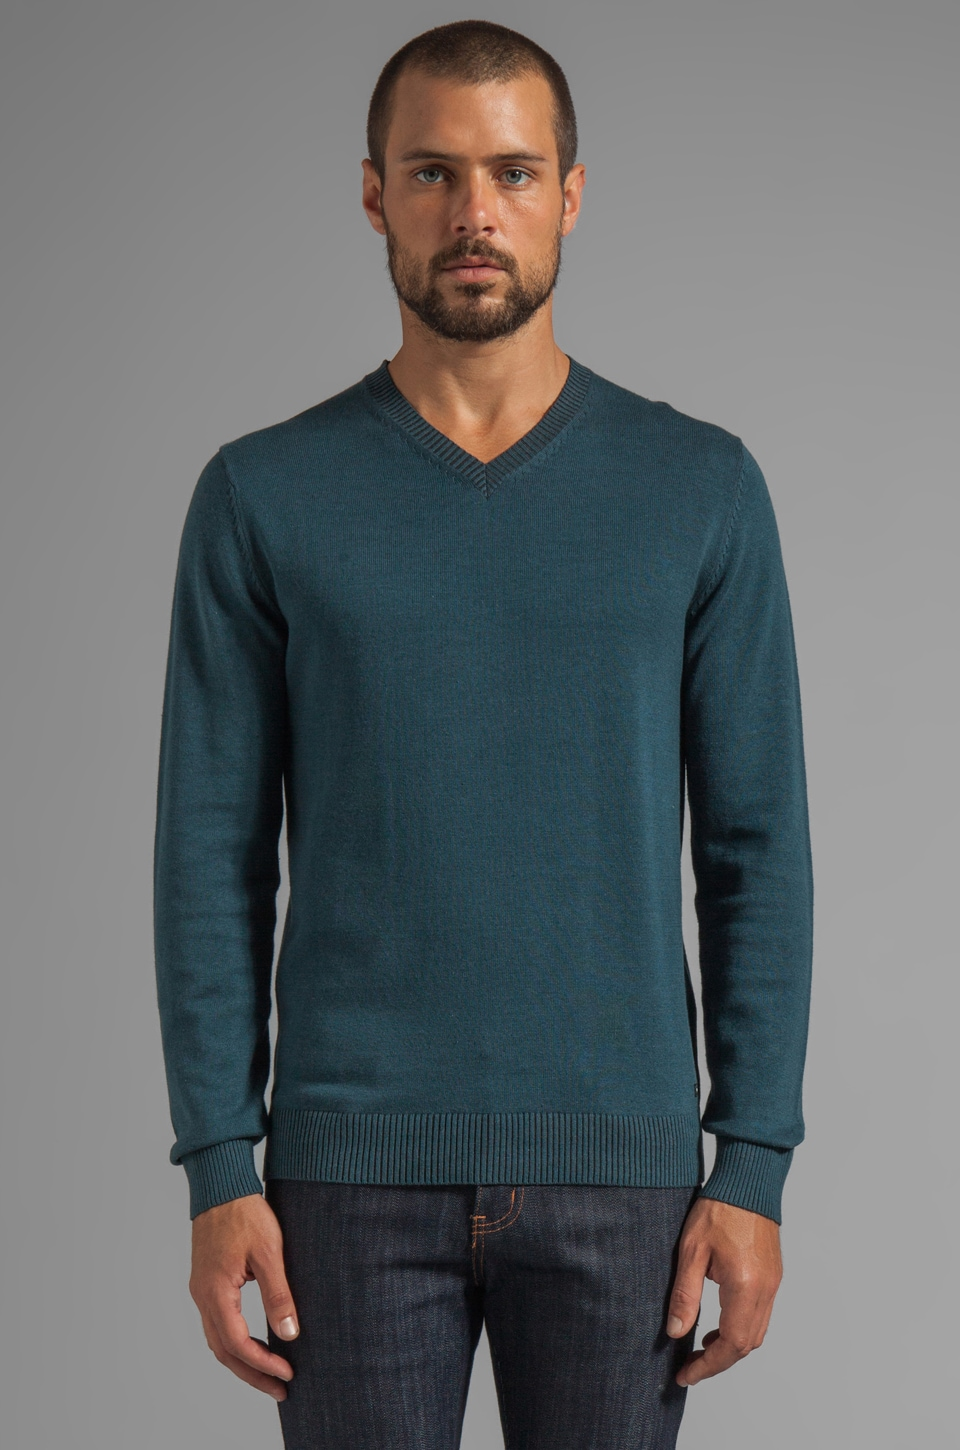 RVCA Plate Sweater Pullover V Neck in Desert Blue